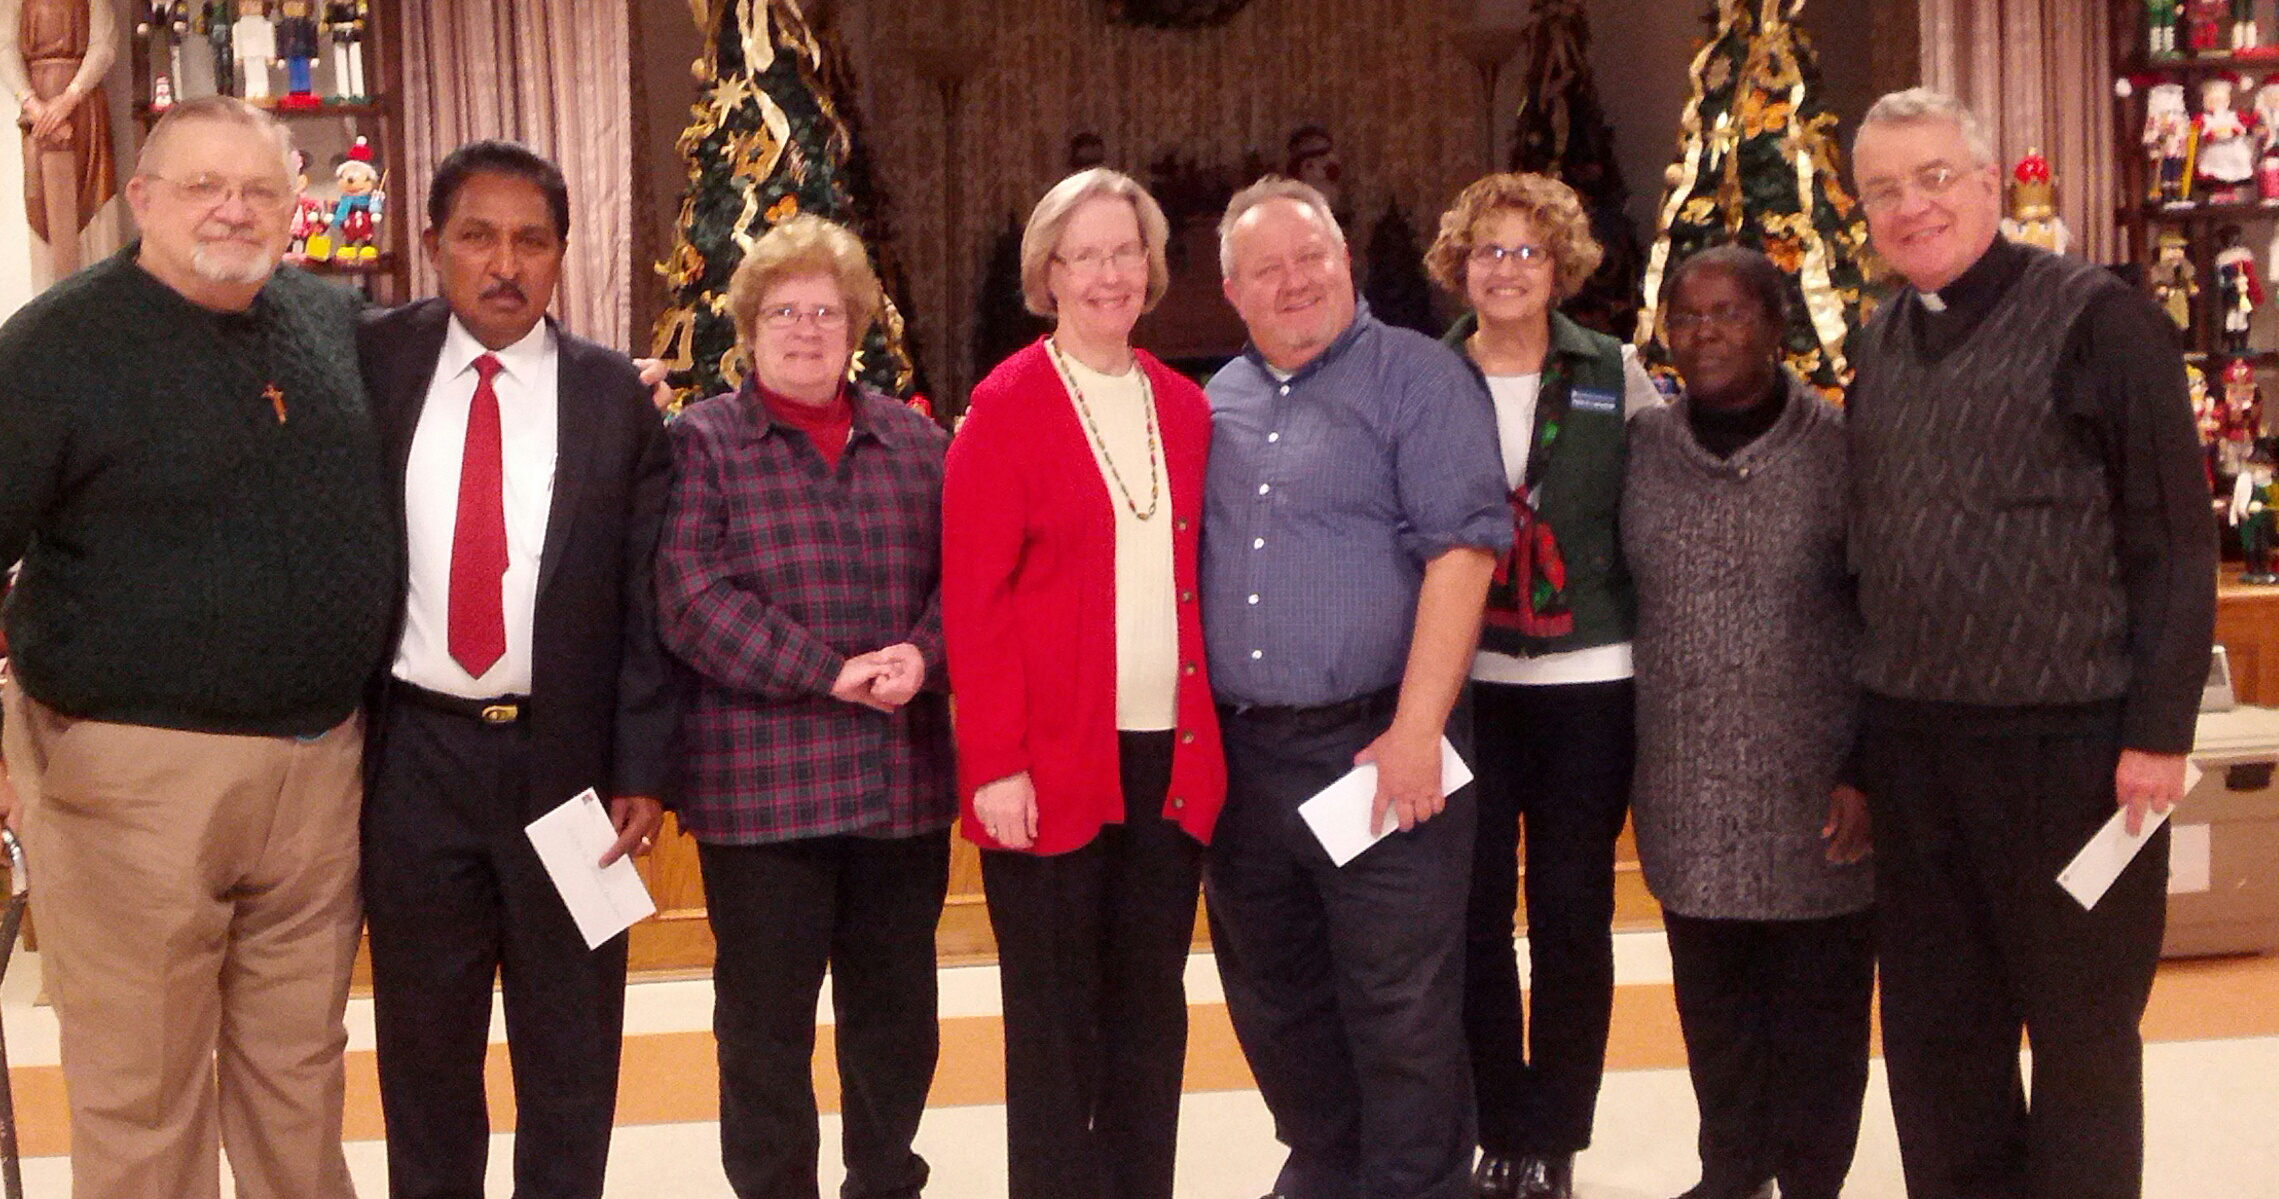 Hope At Christmas.Triune K Of C Brings Hope At Christmas Rockland Right To